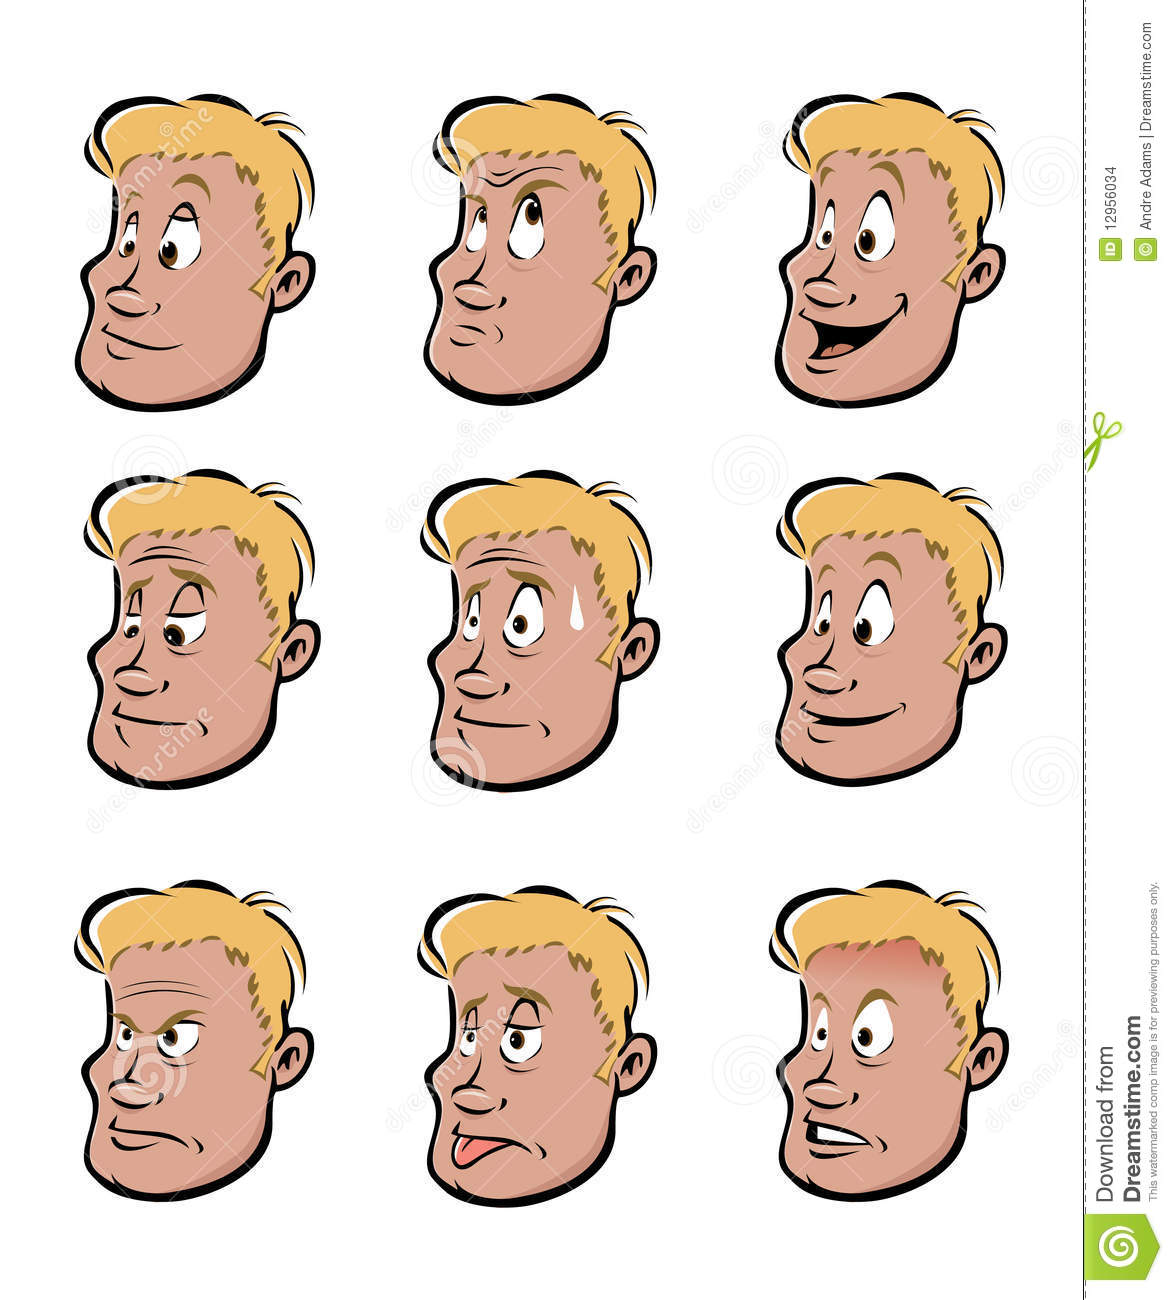 facial expressions presentation doc When facial expressions are blended, this facial nerve paralysis - causes , investigations and treatment of facial palsy | powerpoint ppt presentation.